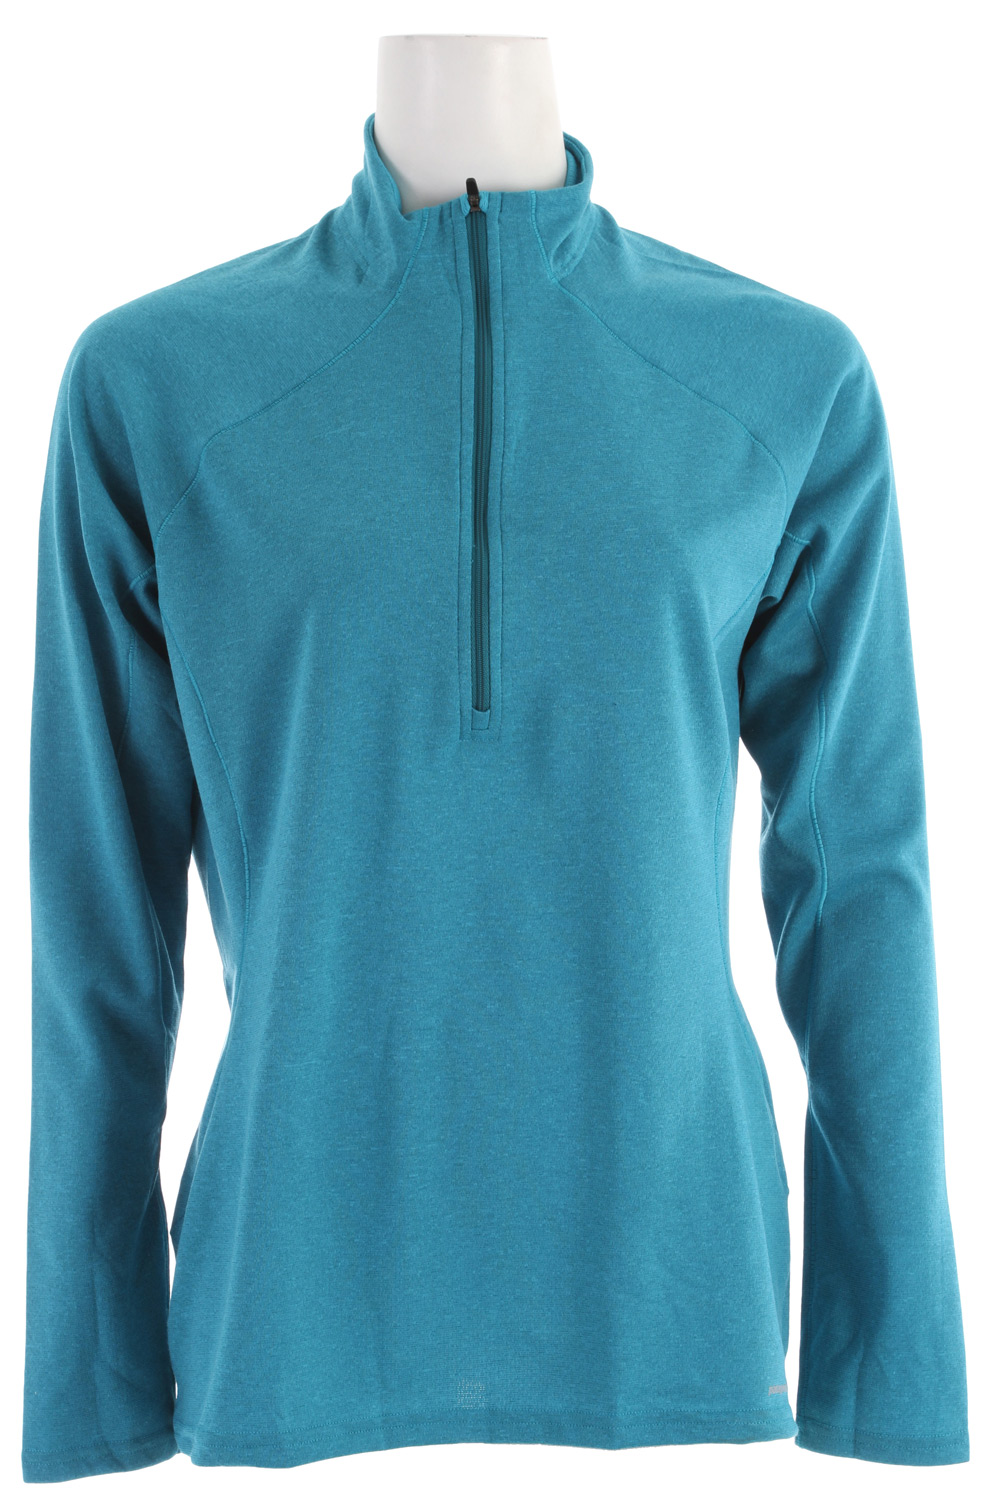 Our most versatile synthetic baselayer keeps you dry and warmKey Features of the Patagonia Capilene 3 Midweight Zip-Neck Baselayer Top Narwhal Grey - Fog Xdye: Stretchy, double-weave fabric wicks extremely well Durable smooth jersey face slides easily beneath layers Fabric is brushed for warmth, softness and compressibility; provides excellent insulation and breathability Zip-neck for easy climate control is backed by kissing welts for low-bulk comfort next to skin Raglan sleeves and underarm panels placed strategically to provide full range of motion and comfort under layers Straight hem; cut long enough to tuck in Machine-wash cold, tumble dry at low temperature Slim fit (7.7 oz) 218 g fabric: Solids: 5.4-oz Polartec Power Dry 100% polyester double knit (65% recycled). Heathers: 5.4-oz Polartec Power Dry 100% polyester double knit (51% recycled), both with Gladiodor odor control for the garment - $34.95